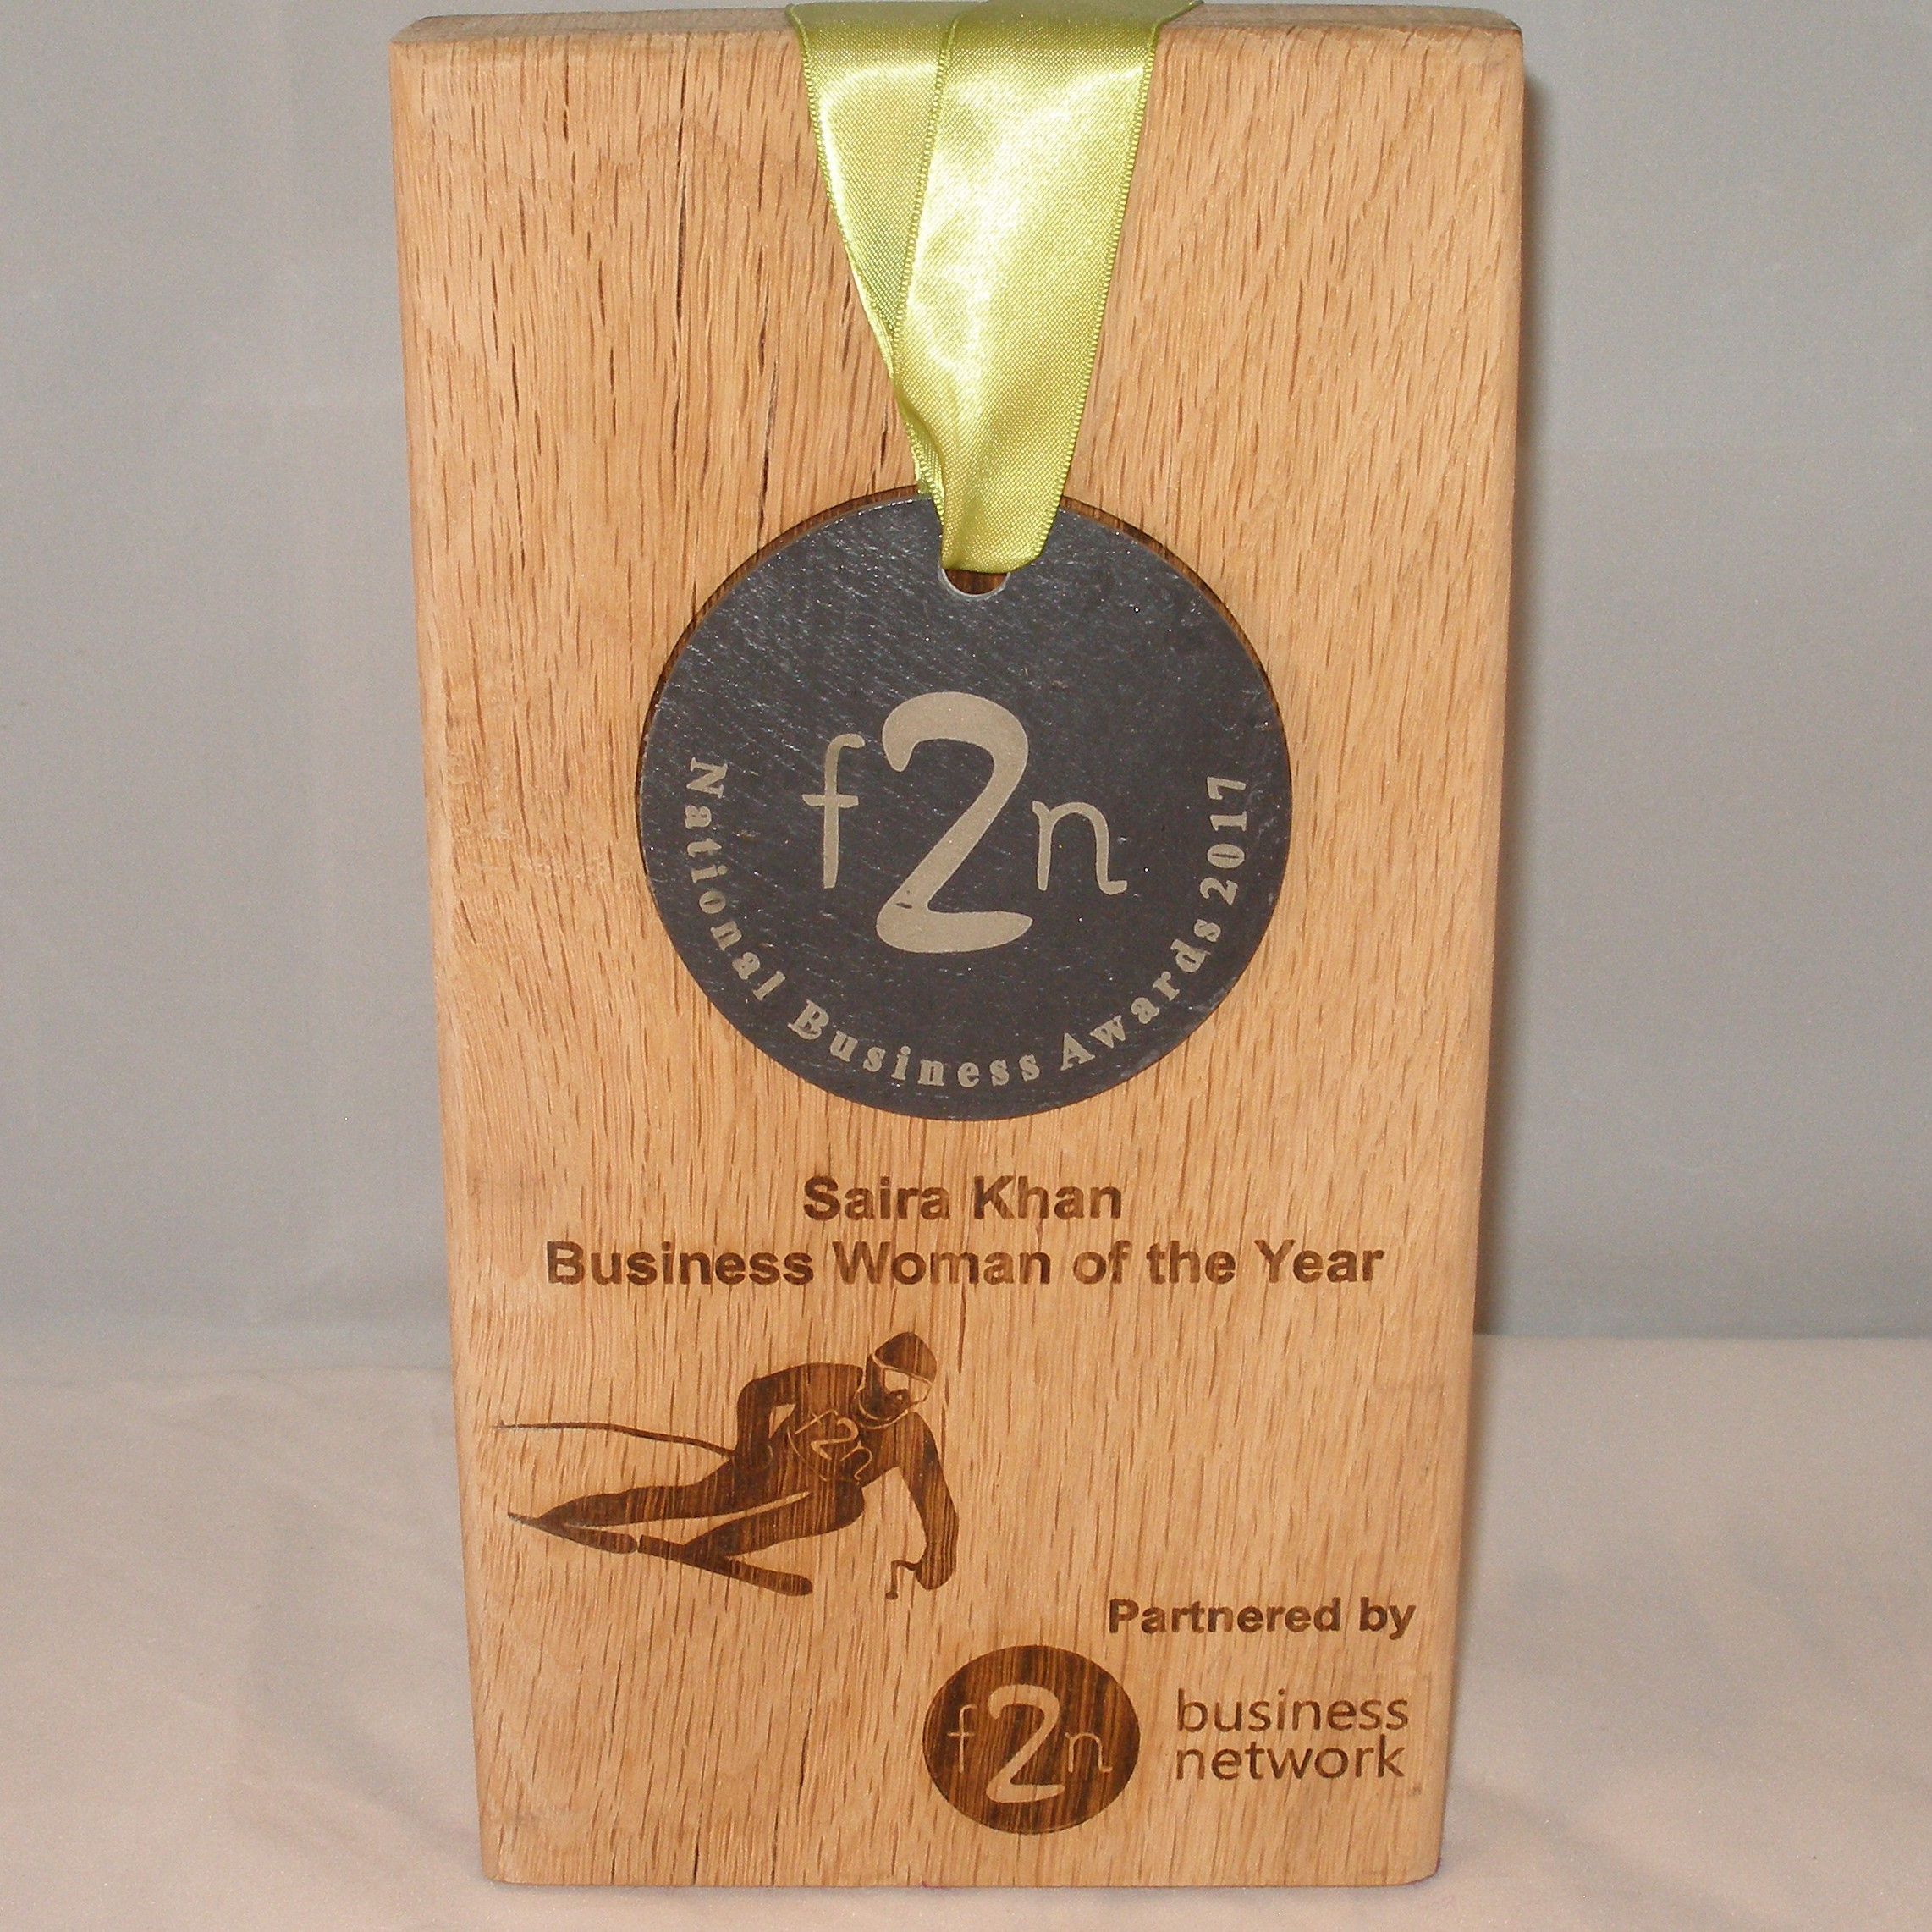 12) Saira Khan Business Woman of the Year Award